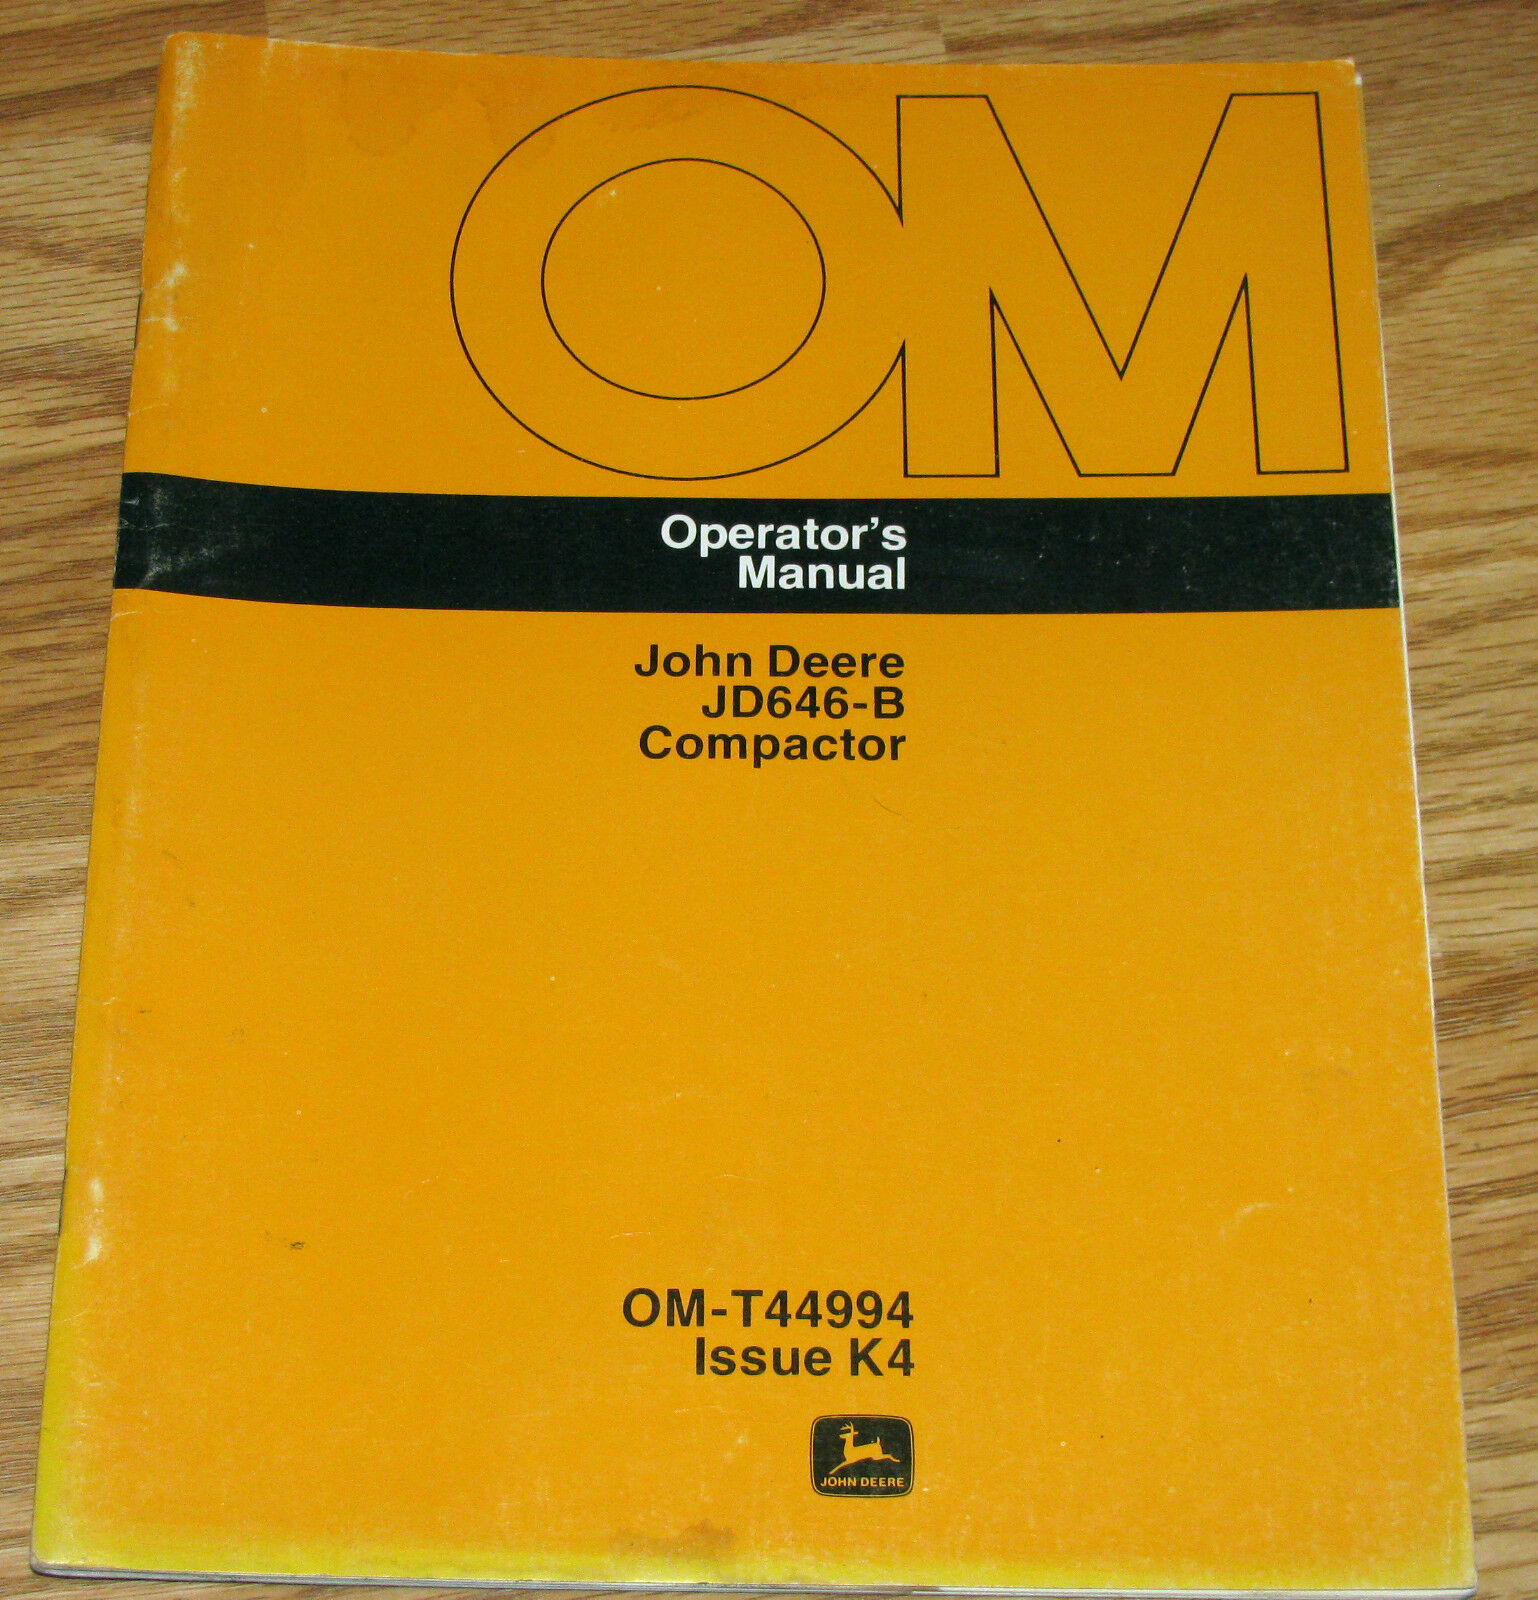 John Deere 646-B Compactor Operators Owners Manual OMT44994 K4 jd 1 of  3Only 1 available ...